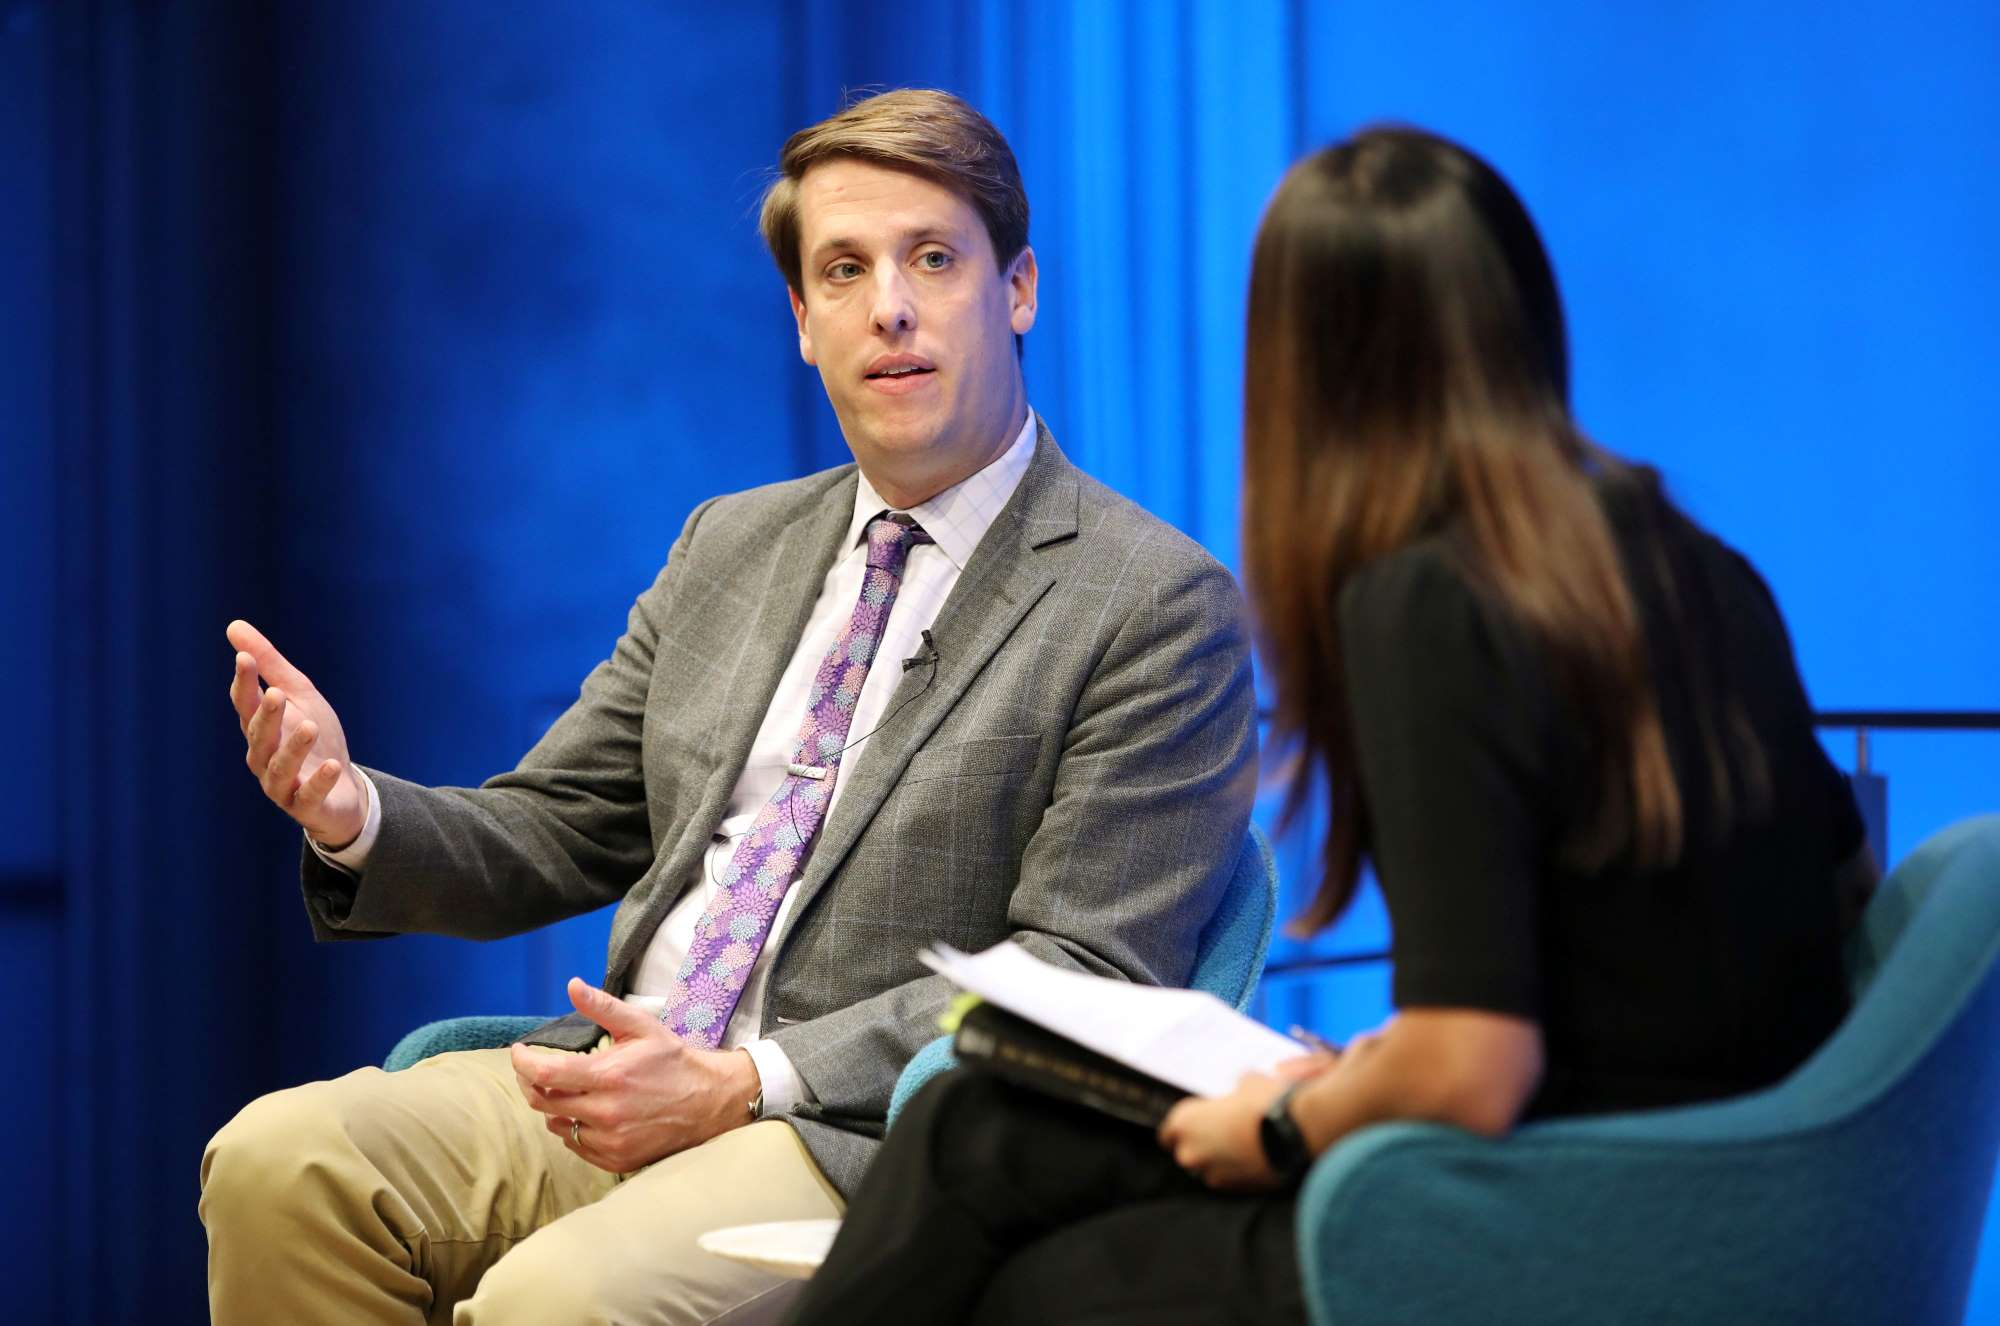 Journalist and historian Garrett Graff gestures with his right hand as he speaks while seated onstage in this close-up photo of him and the host, who is seated beside him in the foreground.